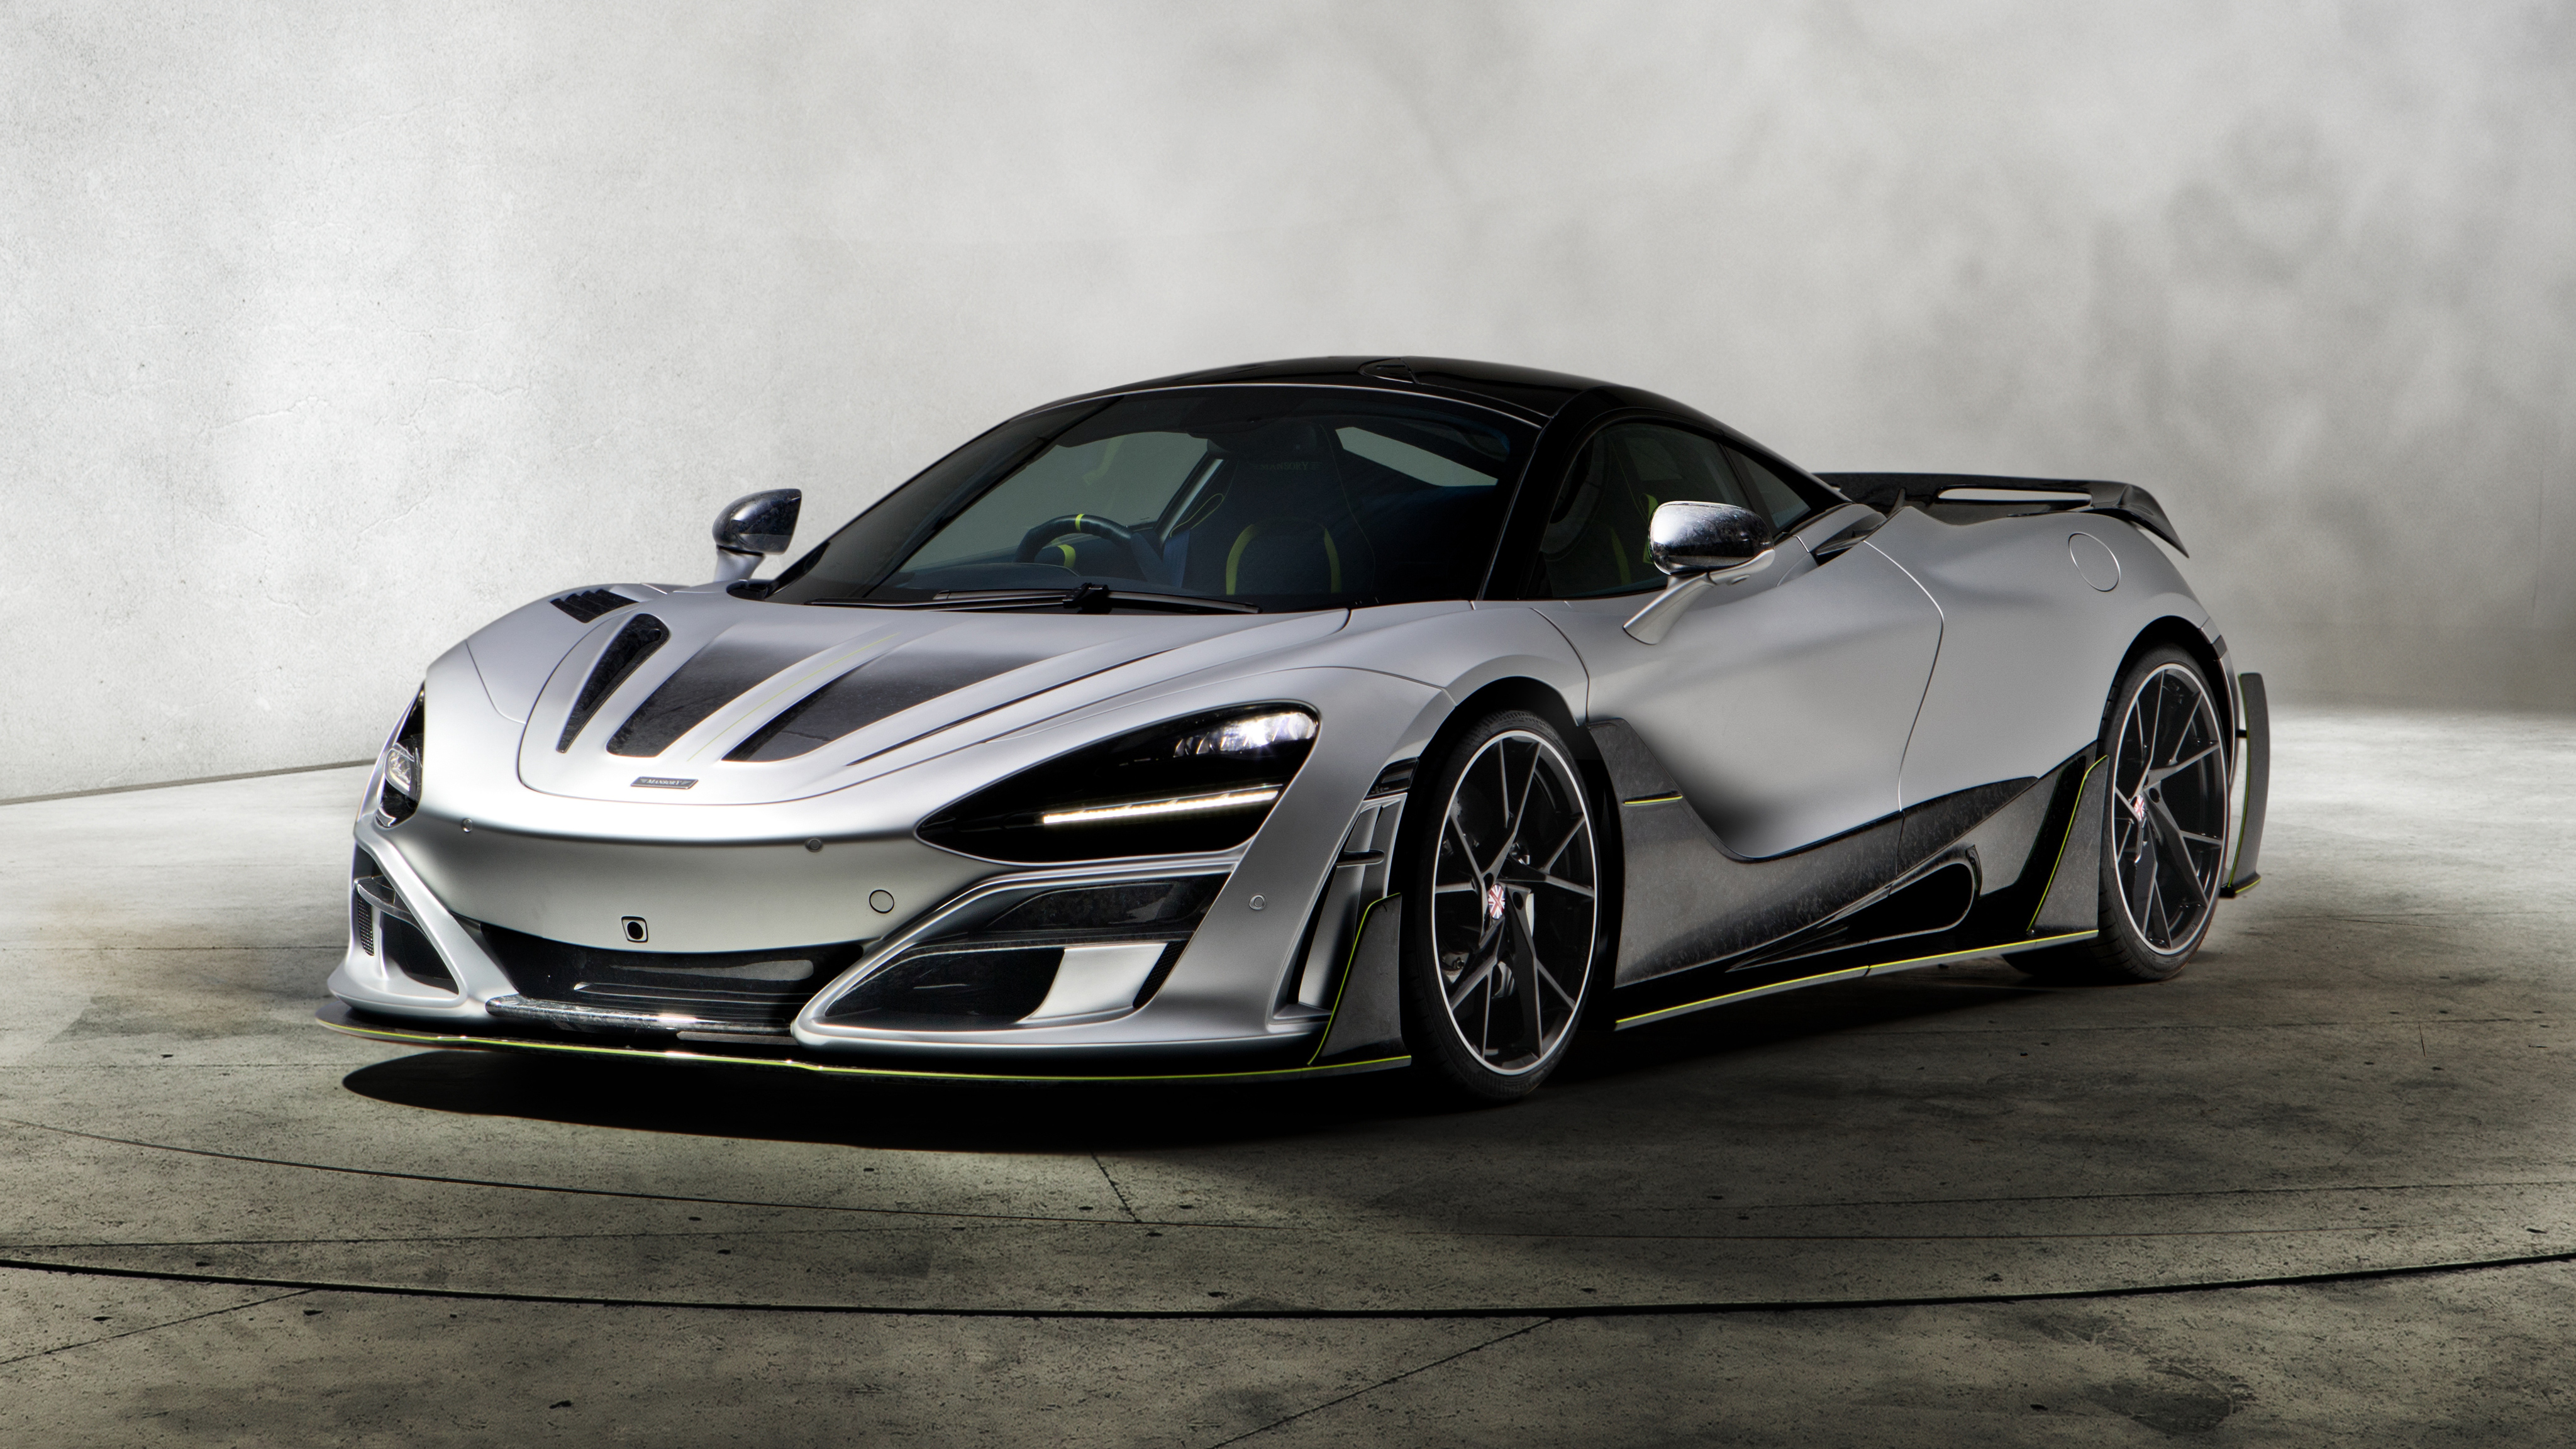 2018 Mansory Mclaren 720s First Edition 4k Wallpaper Hd